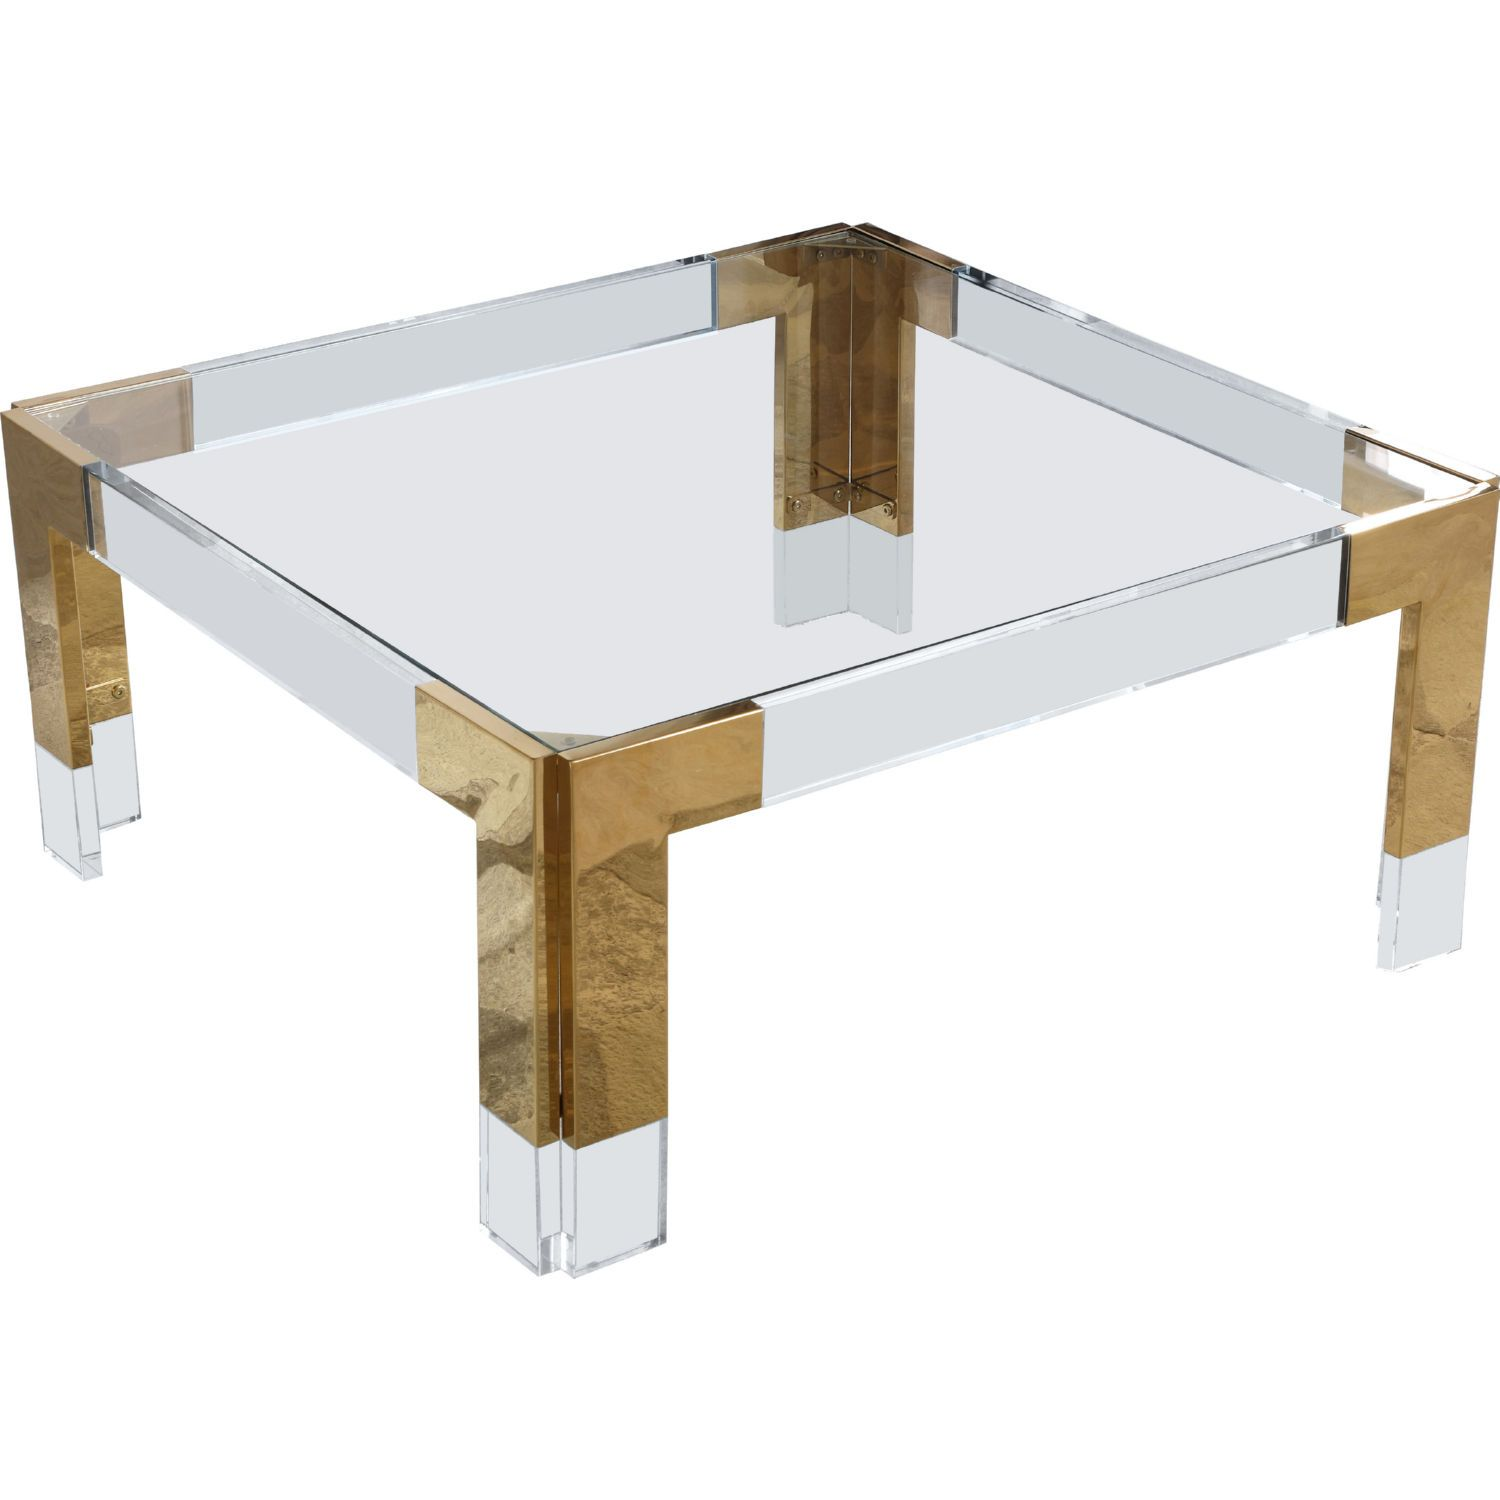 Meridian Furniture 200 Ct Casper Coffee Table Glass Gold Stainless Acrylic In 2021 Glass Coffee Table Coffee Table Square Acrylic Coffee Table [ 1500 x 1500 Pixel ]